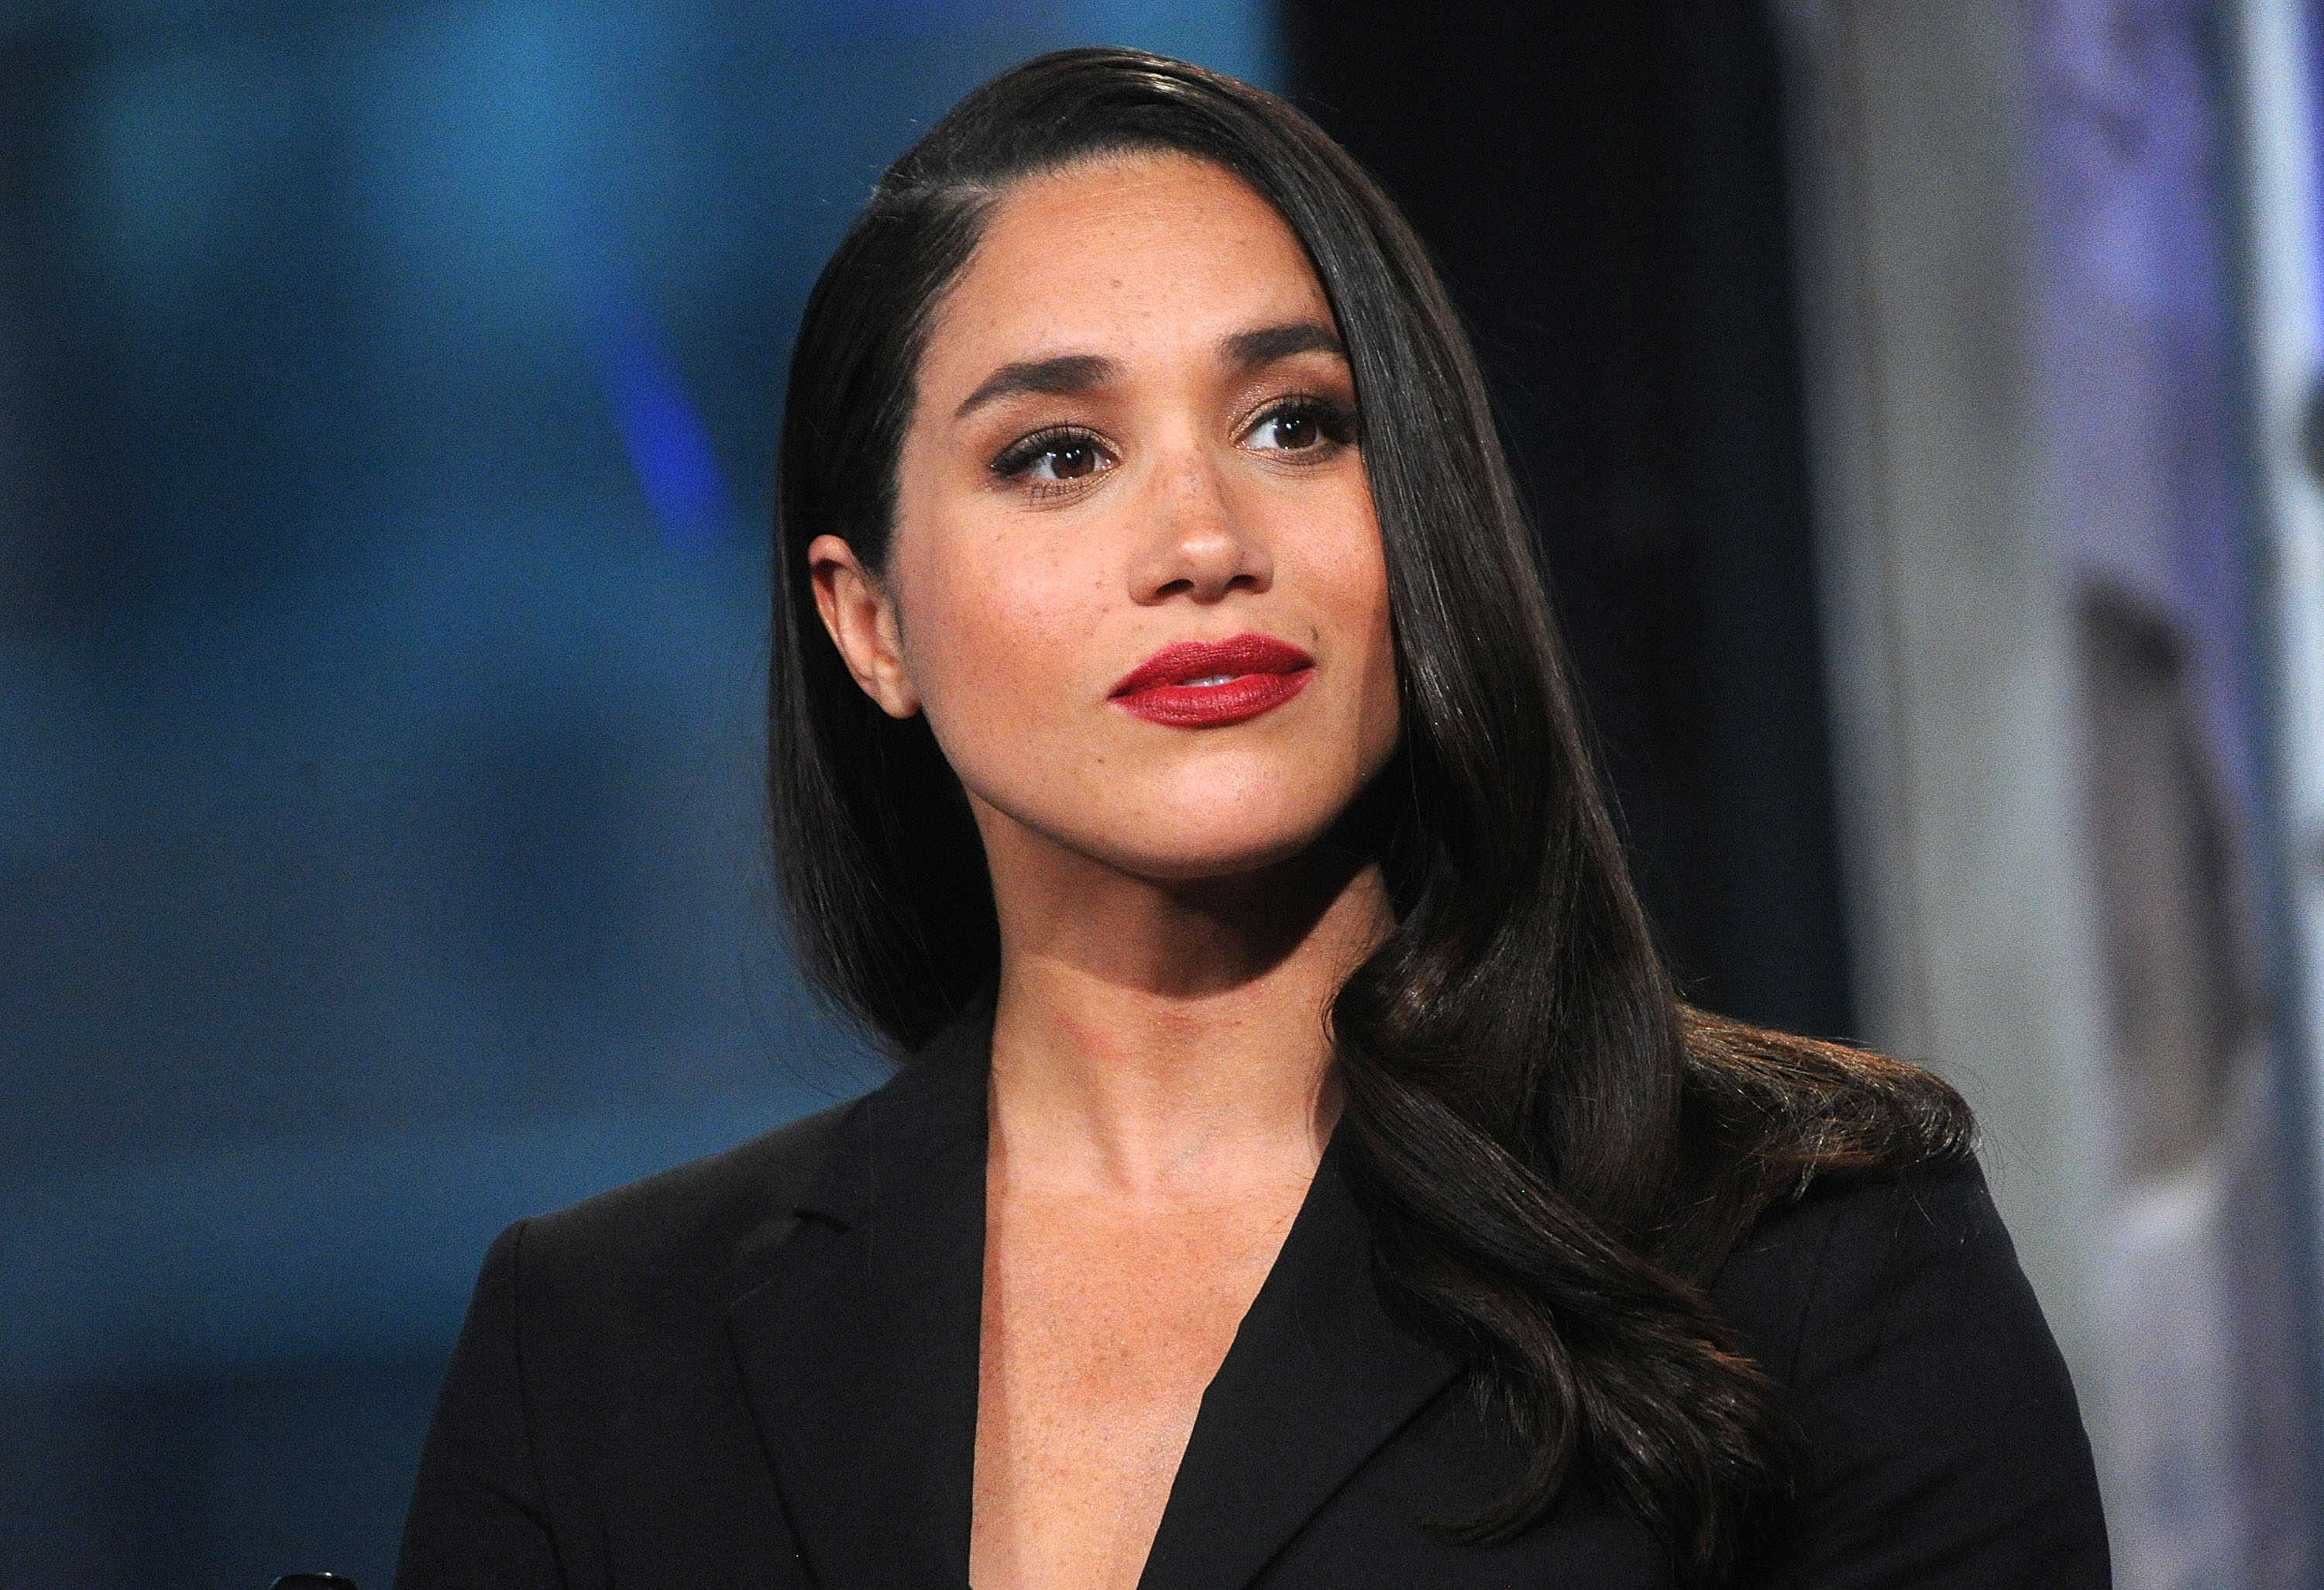 """Meghan Markle attends AOL Build Presents """"Suits"""" at AOL Studios In New York on March 17, 2016 in New York City   Photo: Getty Images"""